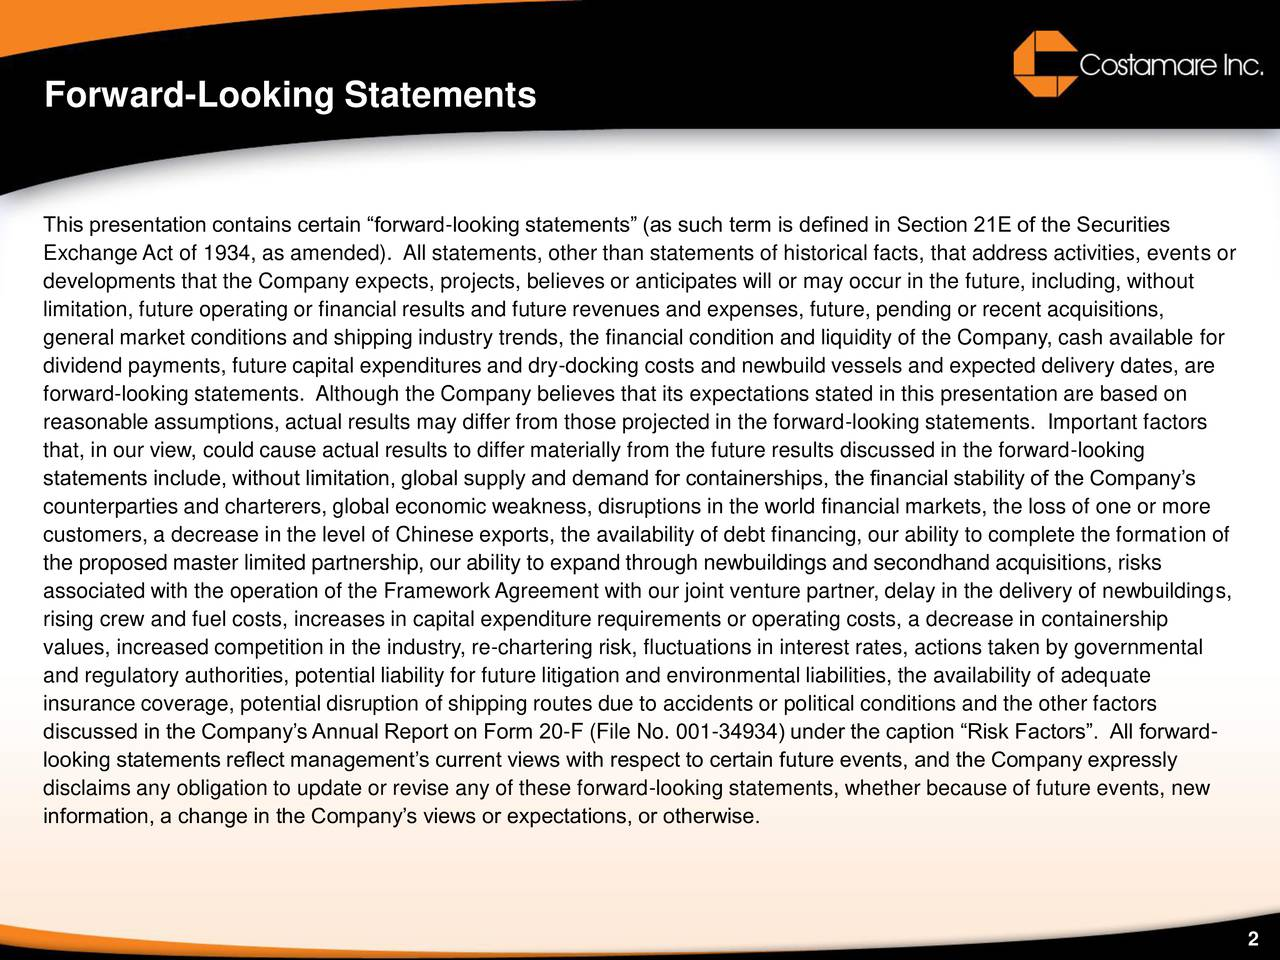 This presentation contains certain forward-looking statements (as such term is defined in Section 21E of the Securities Exchange Act of 1934, as amended). All statements, other than statements of historical facts, that address activities, events or developments that the Company expects, projects, believes or anticipates will or may occur in the future, including, without limitation, future operating or financial results and future revenues and expenses, future, pending or recent acquisitions, general market conditions and shipping industry trends, the financial condition and liquidity of the Company, cash available for dividend payments, future capital expenditures and dry-docking costs and newbuild vessels and expected delivery dates, are forward-looking statements. Although the Company believes that its expectations stated in this presentation are based on reasonable assumptions, actual results may differ from those projected in the forward-looking statements. Important factors that, in our view, could cause actual results to differ materially from the future results discussed in the forward-looking statements include, without limitation, global supply and demand for containerships, the financial stability of the Companys counterparties and charterers, global economic weakness, disruptions in the world financial markets, the loss of one or more customers, a decrease in the level of Chinese exports, the availability of debt financing, our ability to complete the formation of the proposed master limited partnership, our ability to expand through newbuildings and secondhand acquisitions, risks associated with the operation of the Framework Agreement with our joint venture partner, delay in the delivery of newbuildings, rising crew and fuel costs, increases in capital expenditure requirements or operating costs, a decrease in containership values, increased competition in the industry, re-chartering risk, fluctuations in interest rates, actions taken by governmental a